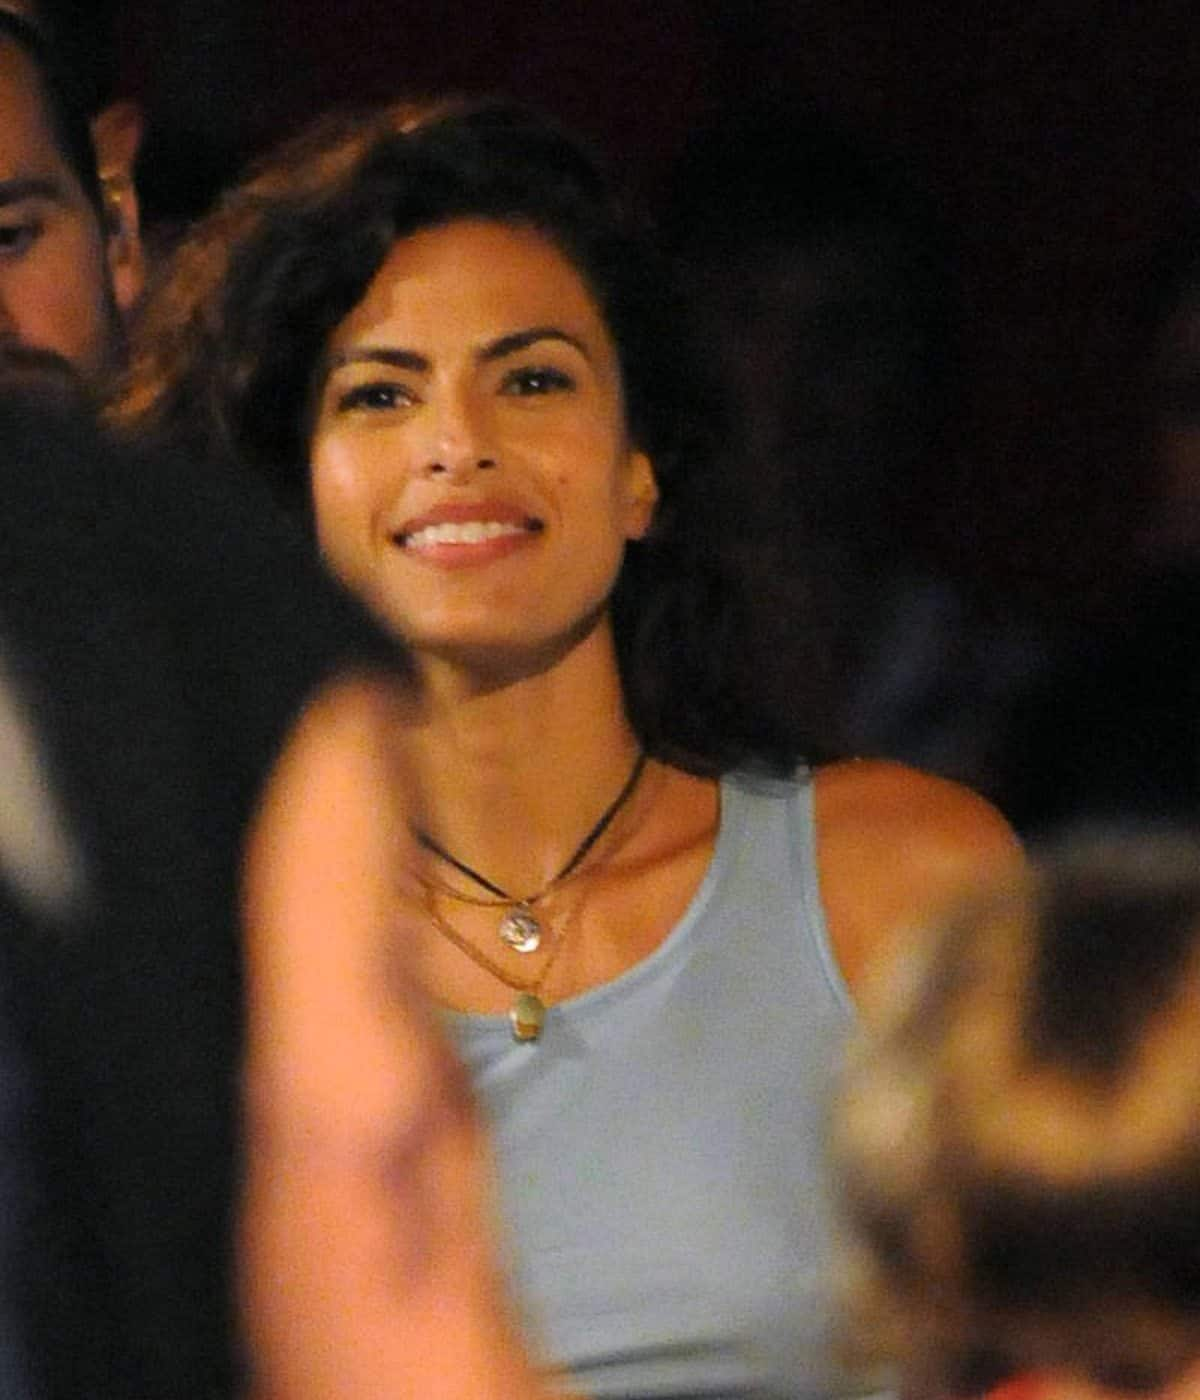 Eva Mendes The Place Beyond the Pines - 2012 - 2019 year